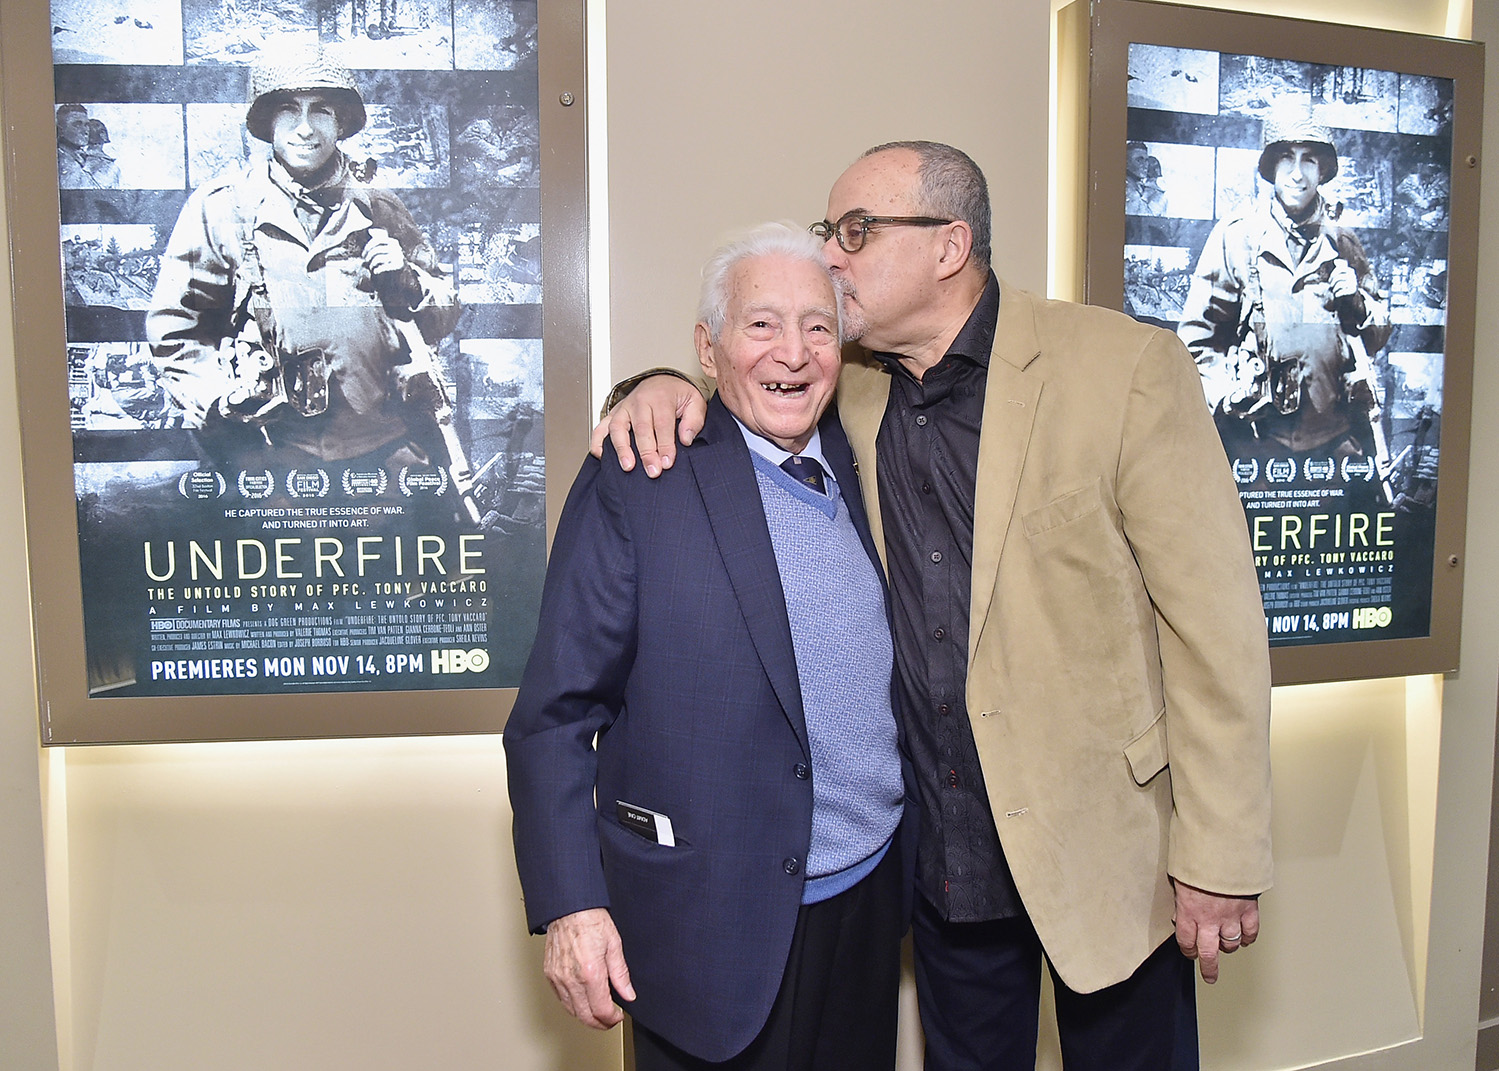 Photographer/film subject Tony Vaccaro and Director Max Lewkowicz attend a special screening of their new film on November 1, 2016 in New York City. (Mike Coppola/Getty Images for HBO)